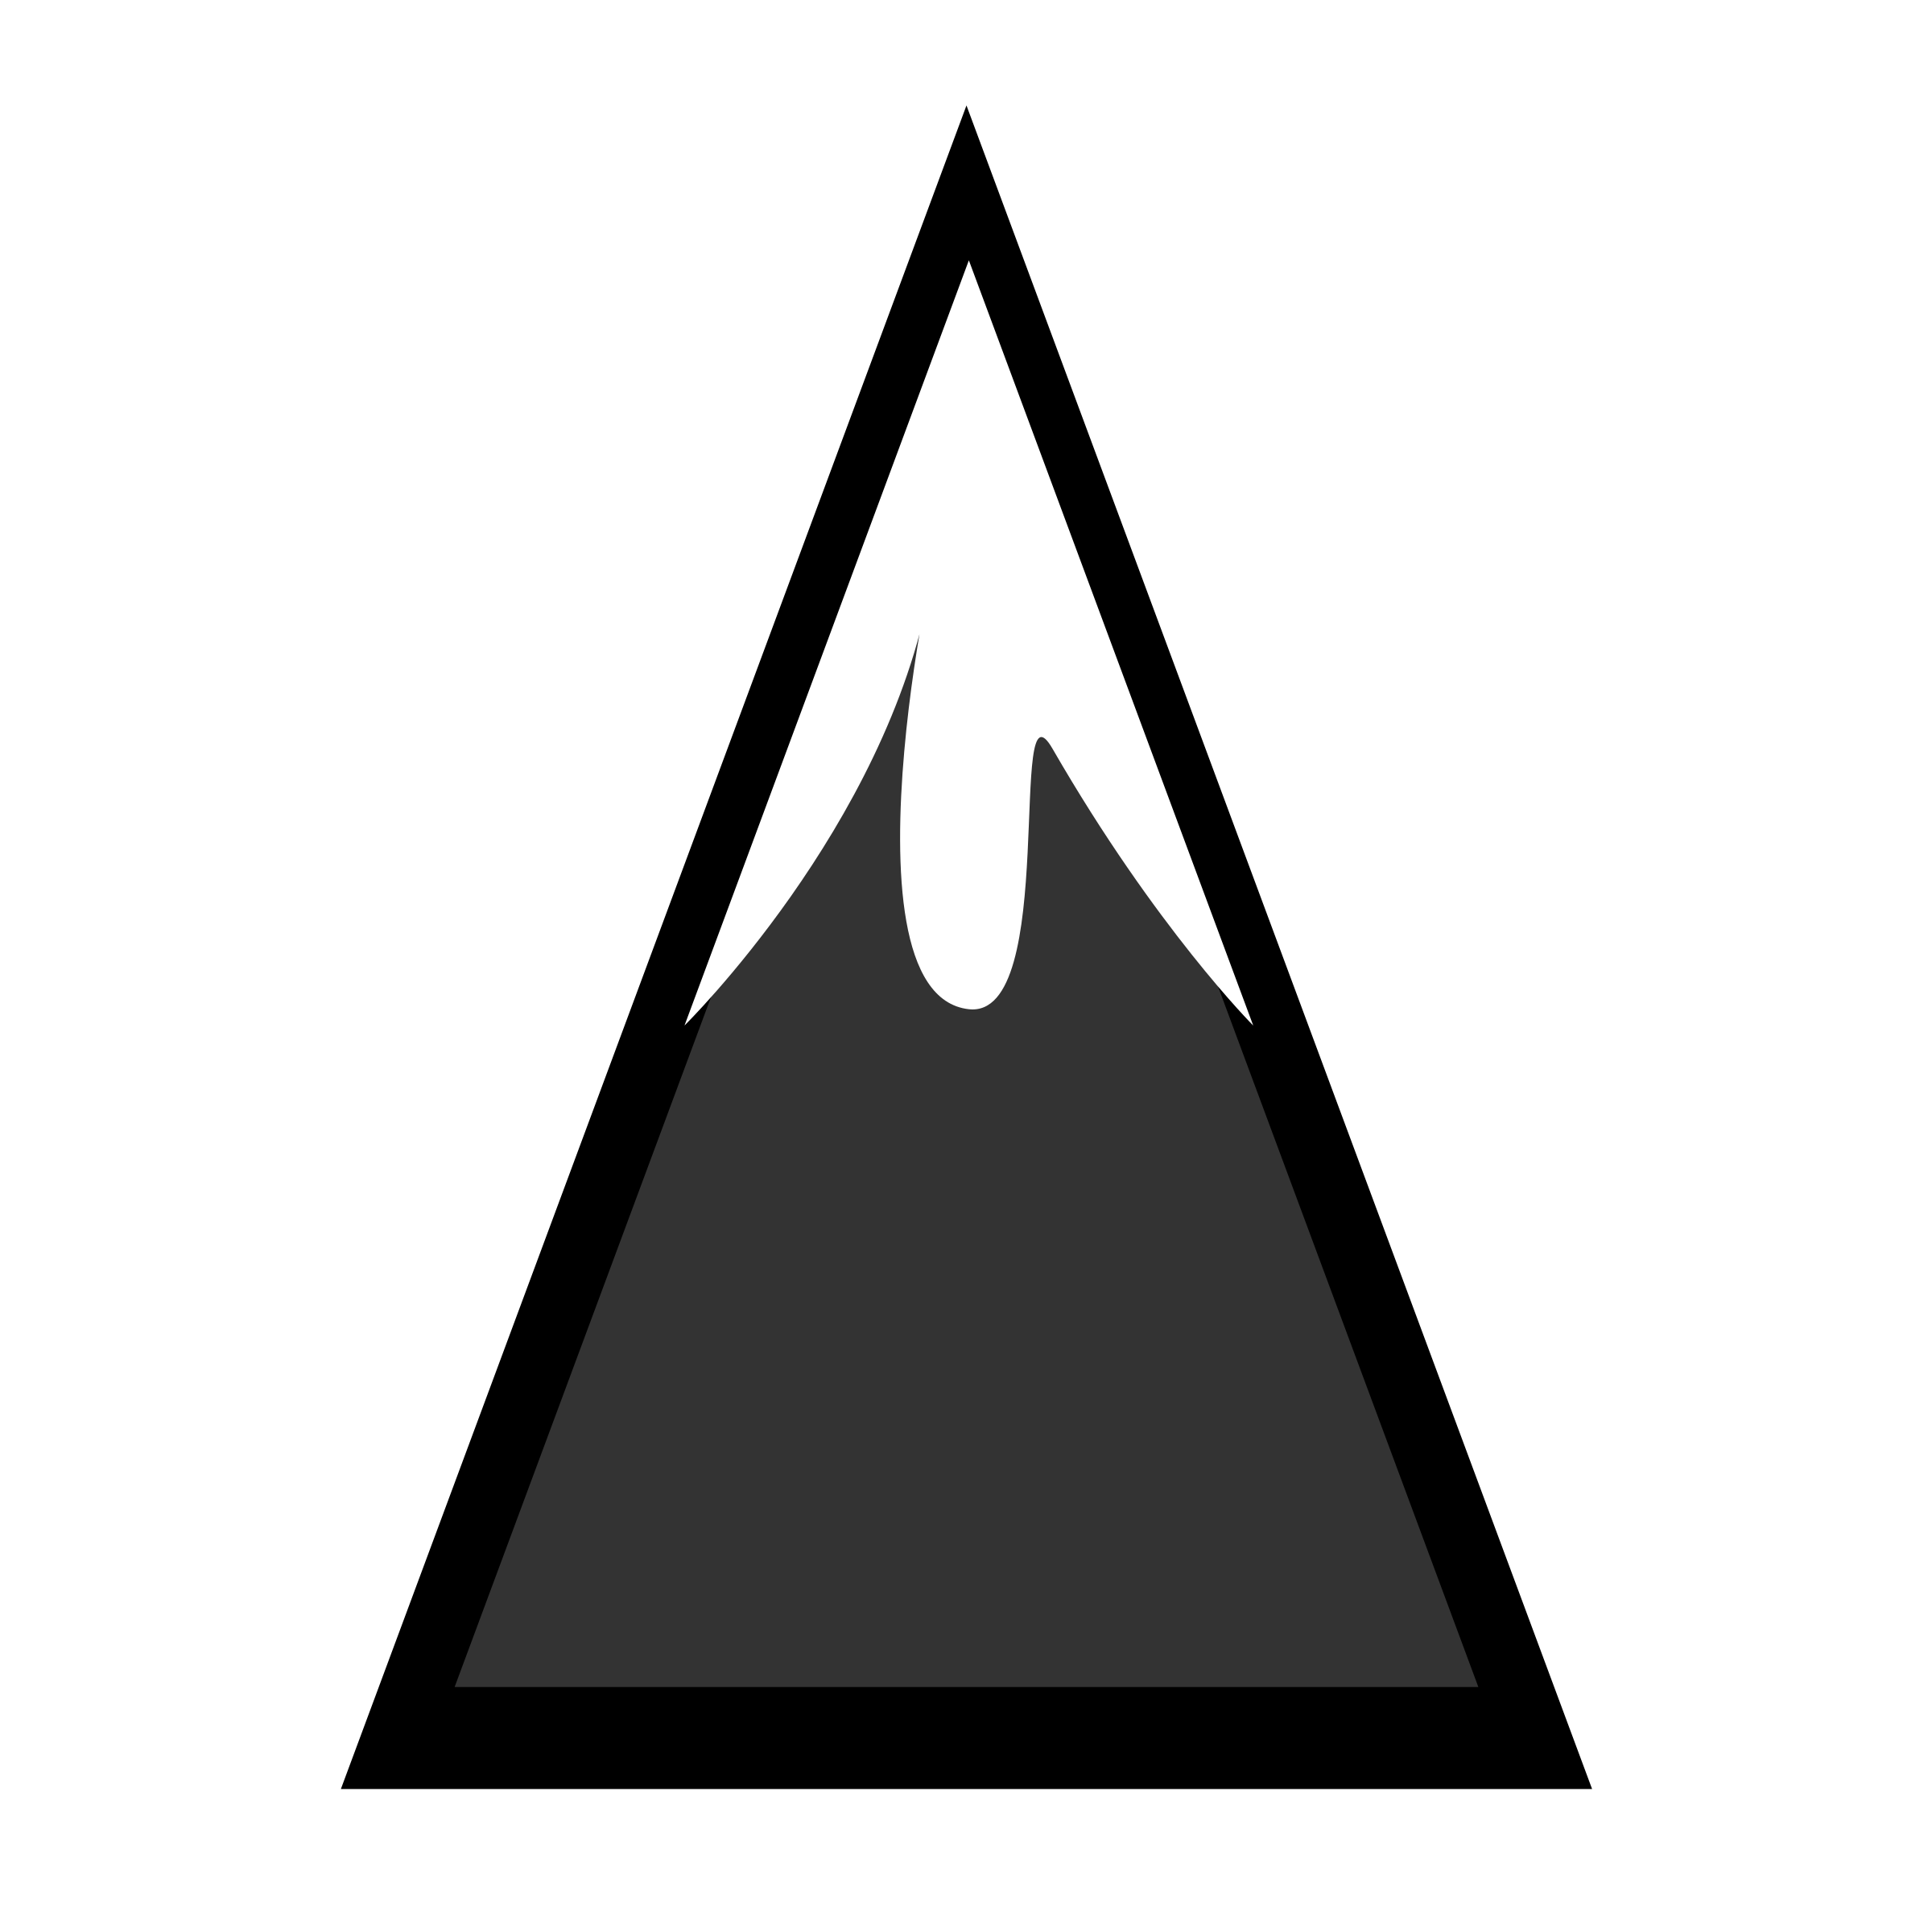 Mountains clipart icon. Snowcapped mountain icons png